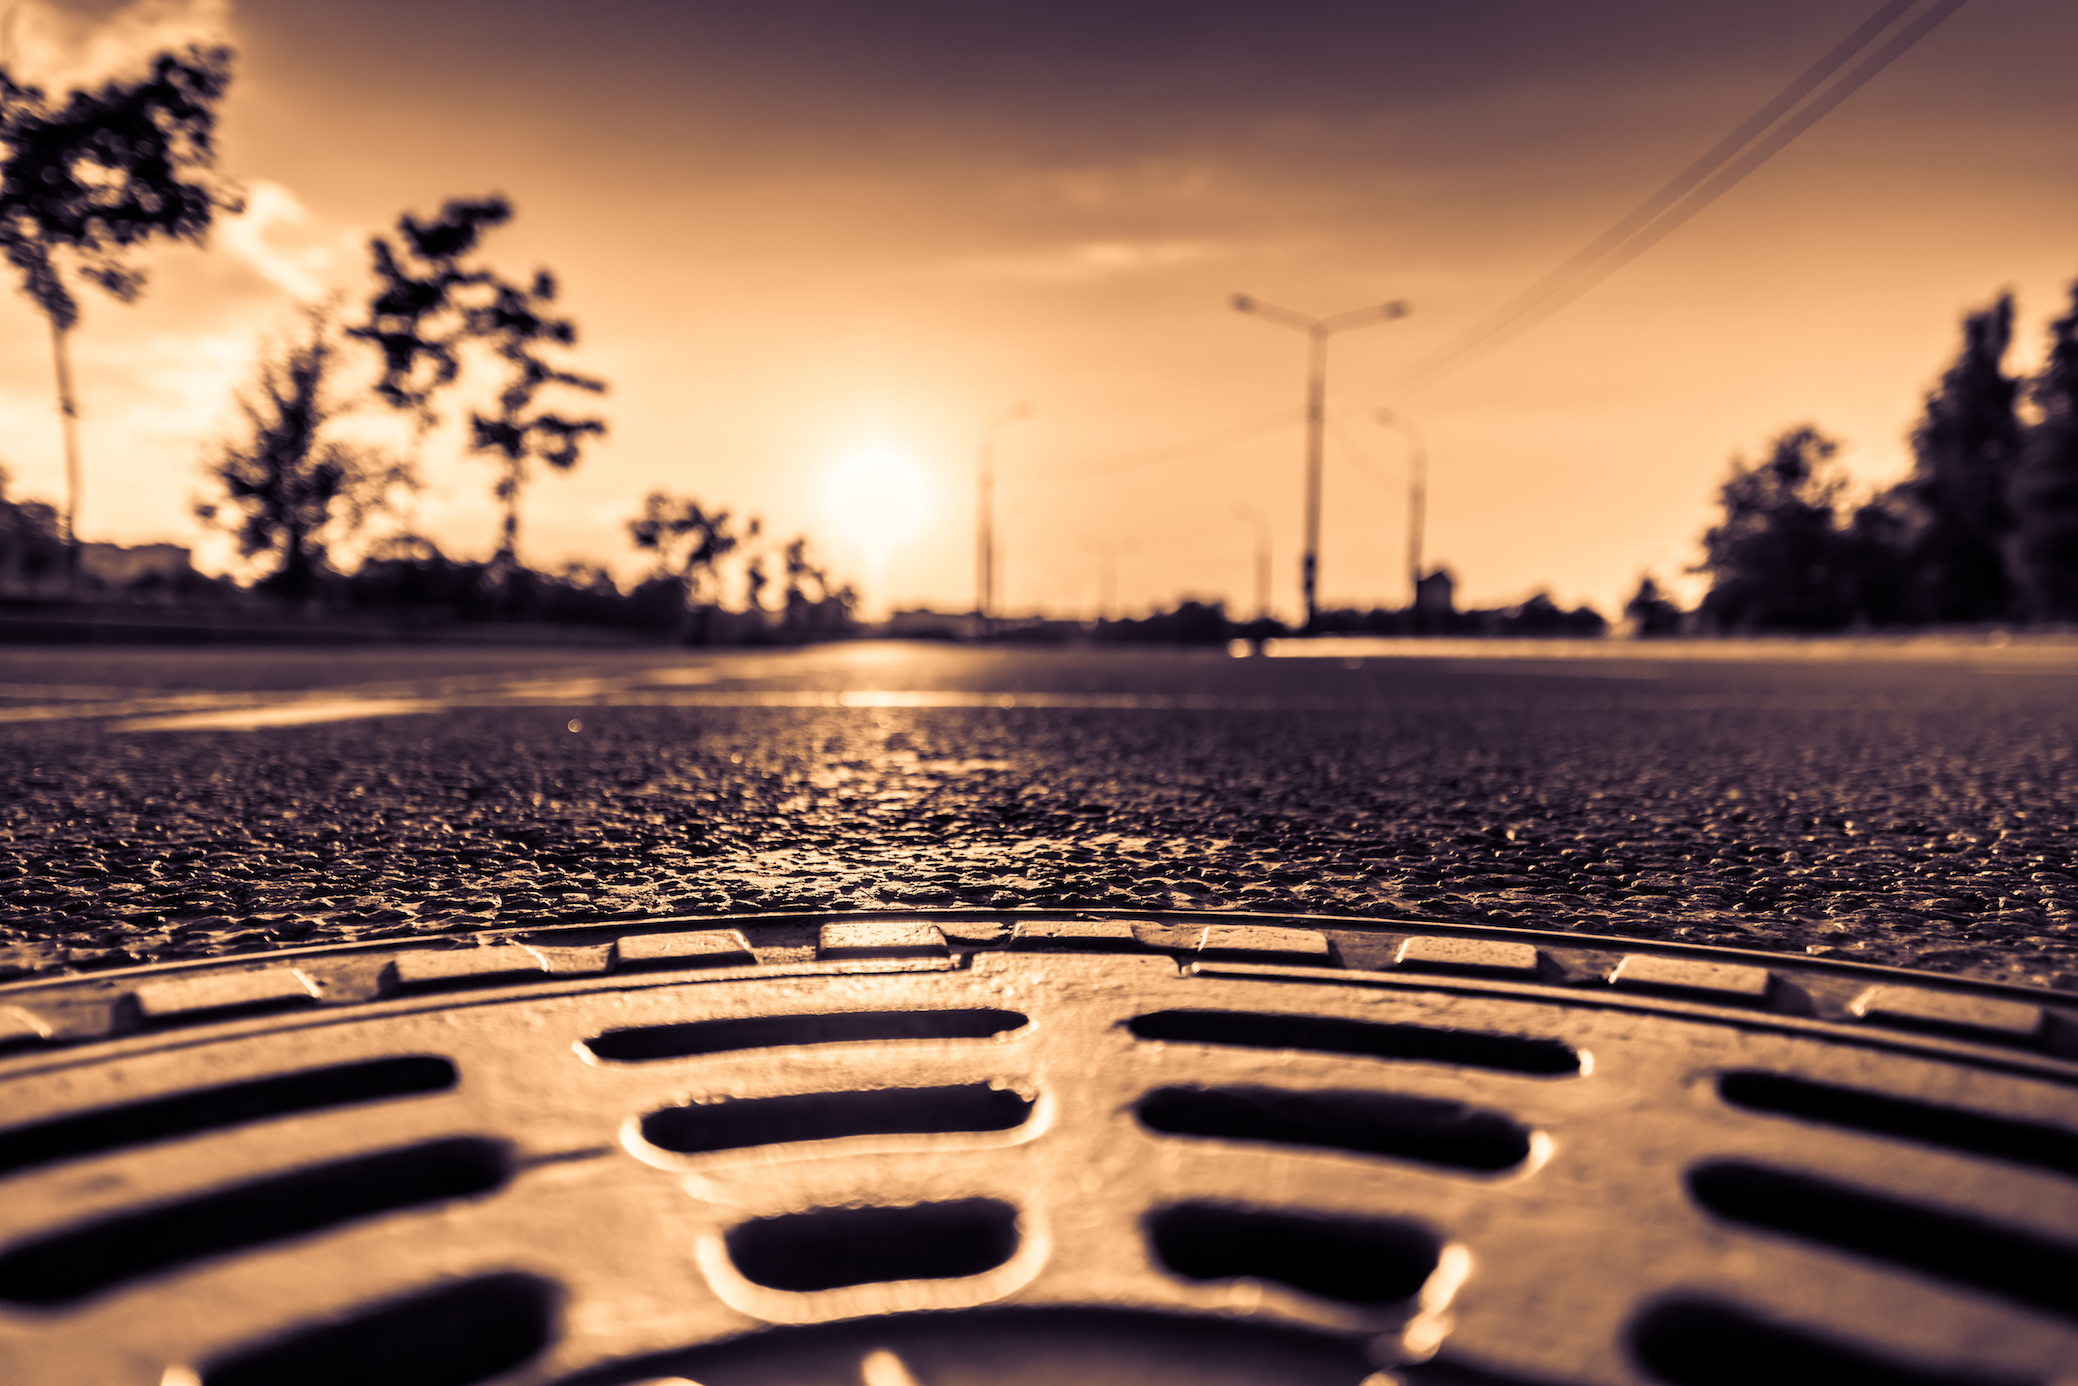 Which is better for the environment, sewers or septic systems? The subject might not be eagerly embraced, but it's a good question to ask.